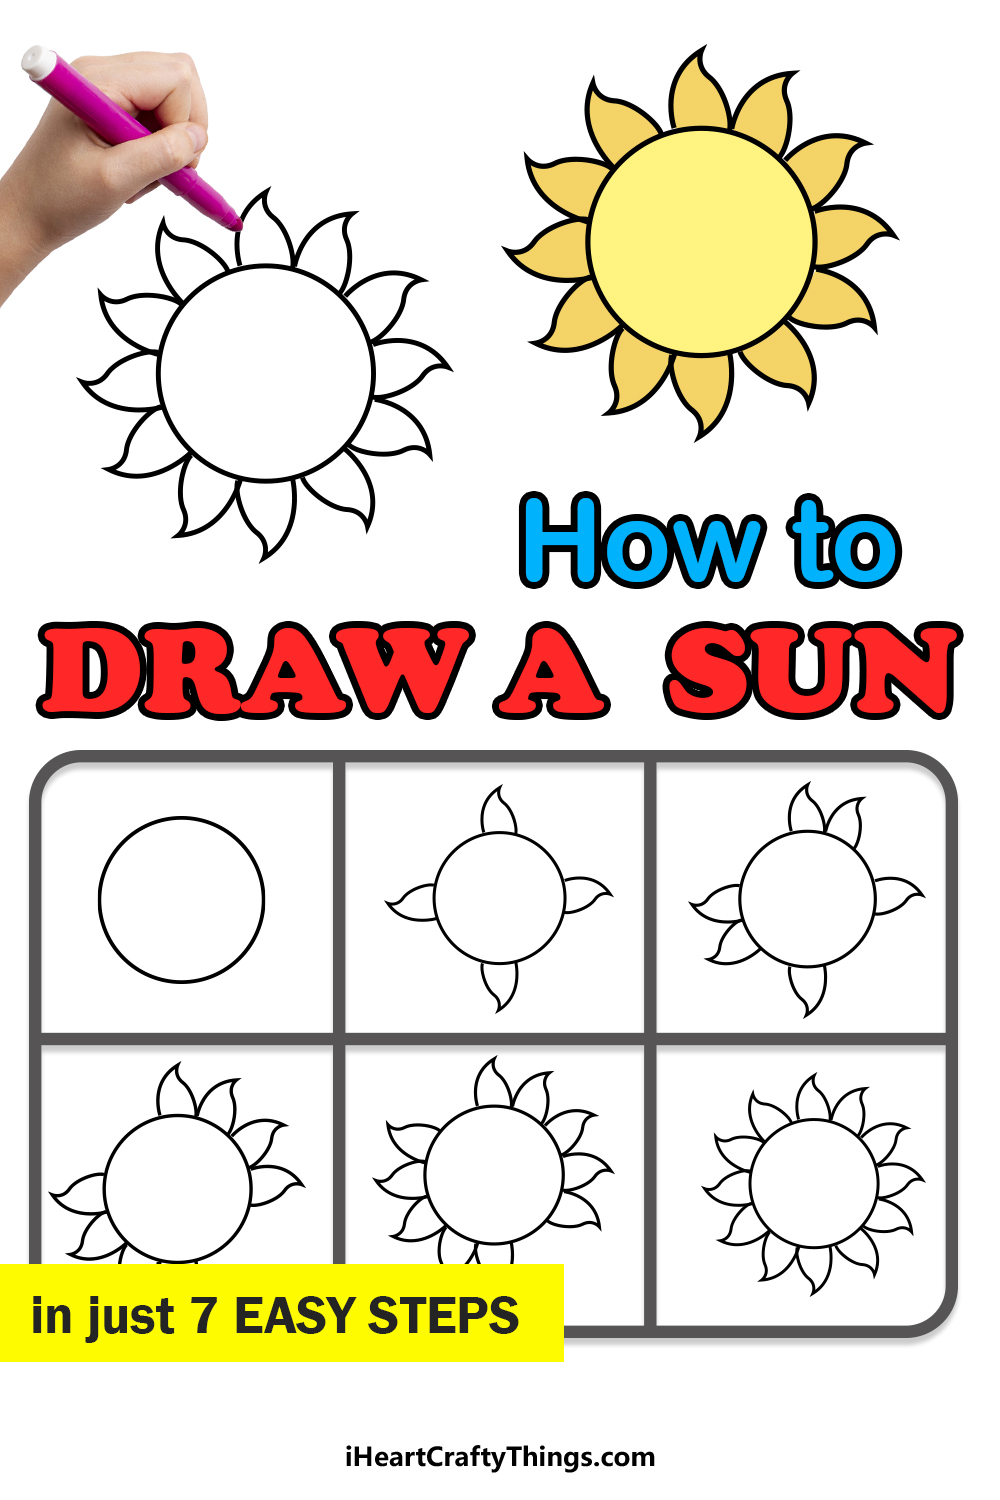 how to draw a sun in 7 steps